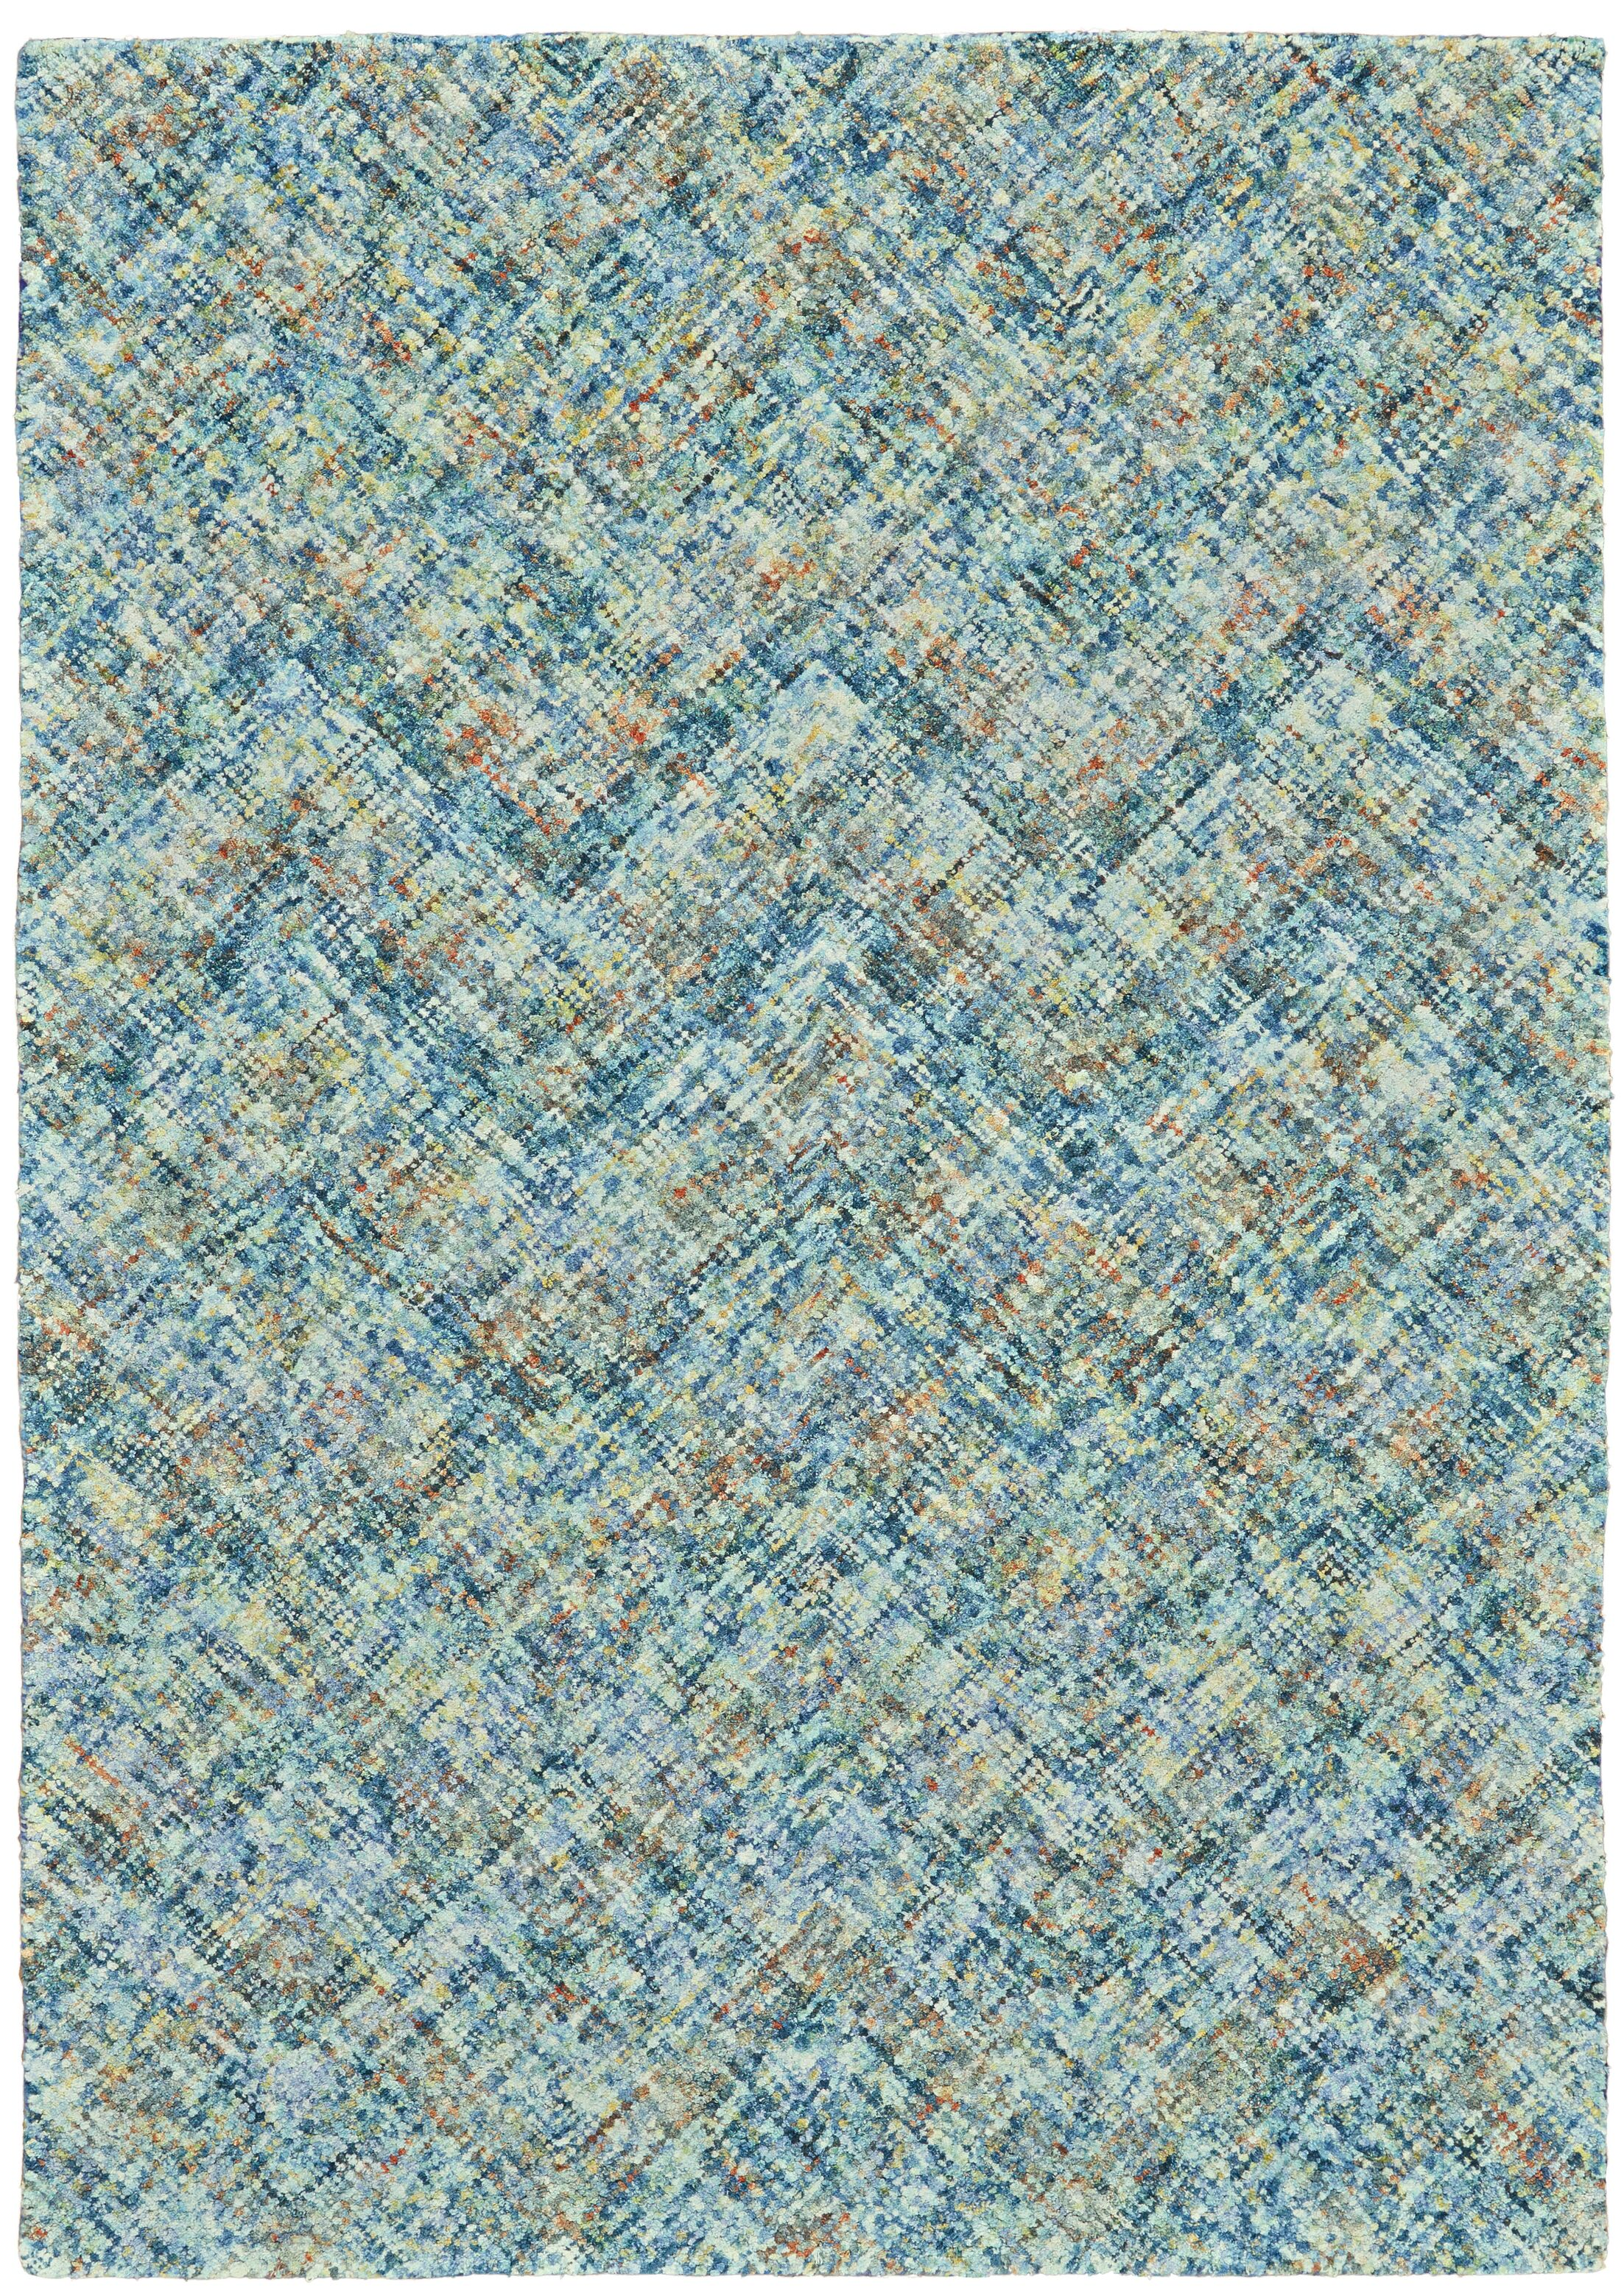 Valverde Hand-Tufted Parisian Area Rug Rug Size: Rectangle 5' x 8'